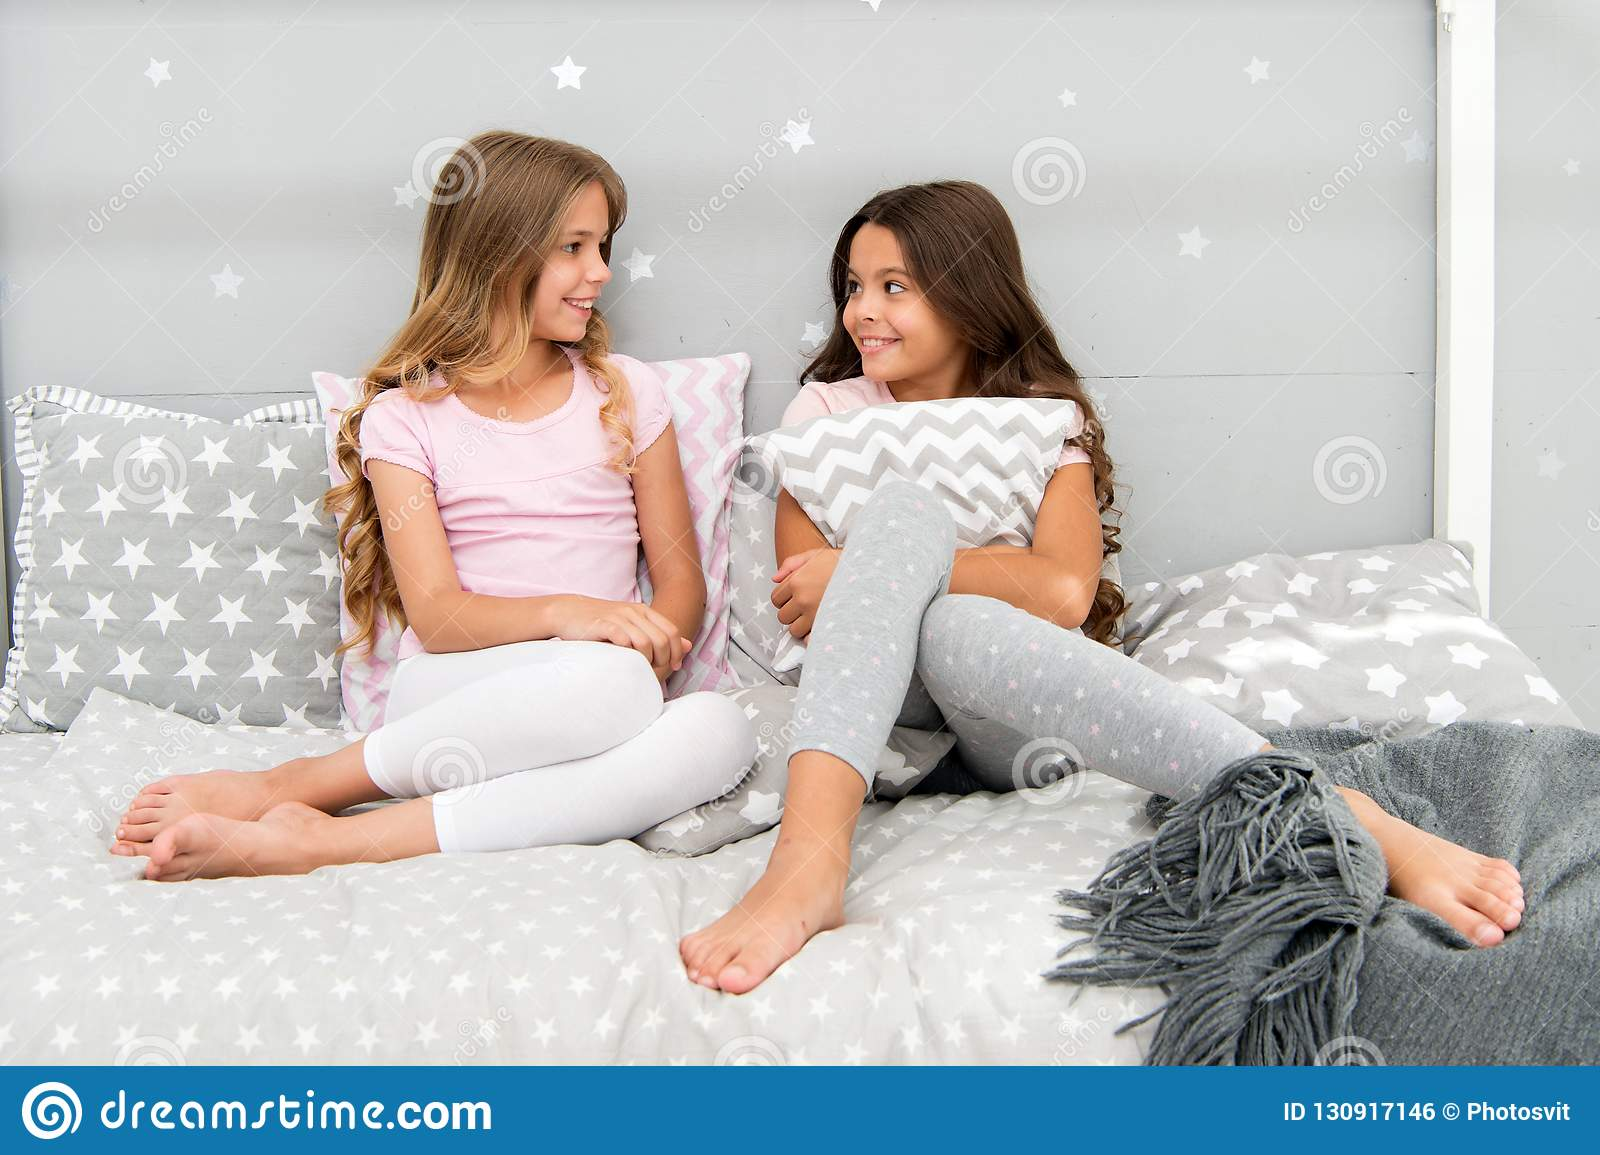 06dc649177 Girls happy best friends or siblings in cute stylish pajamas with pillows  sleepover party. Sisters having fun sleepover party. Pillow fight pajama  party.